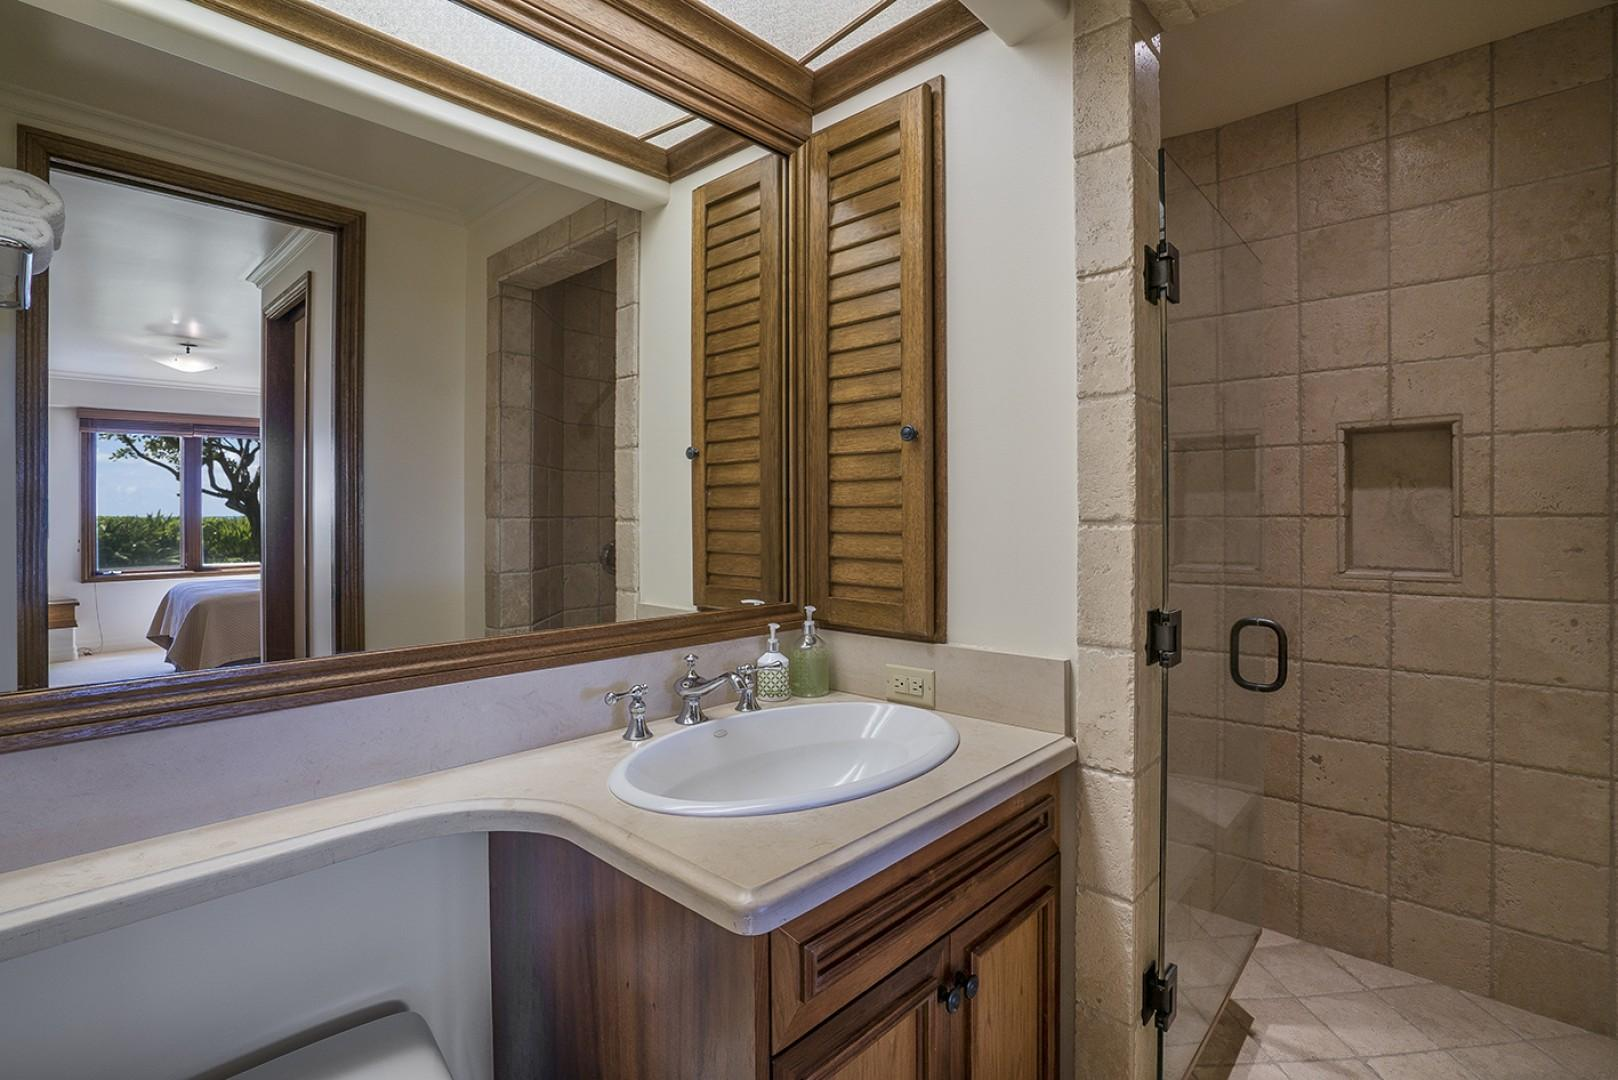 Main house: Guest Bedroom 1 ensuite bathroom with walk in shower.